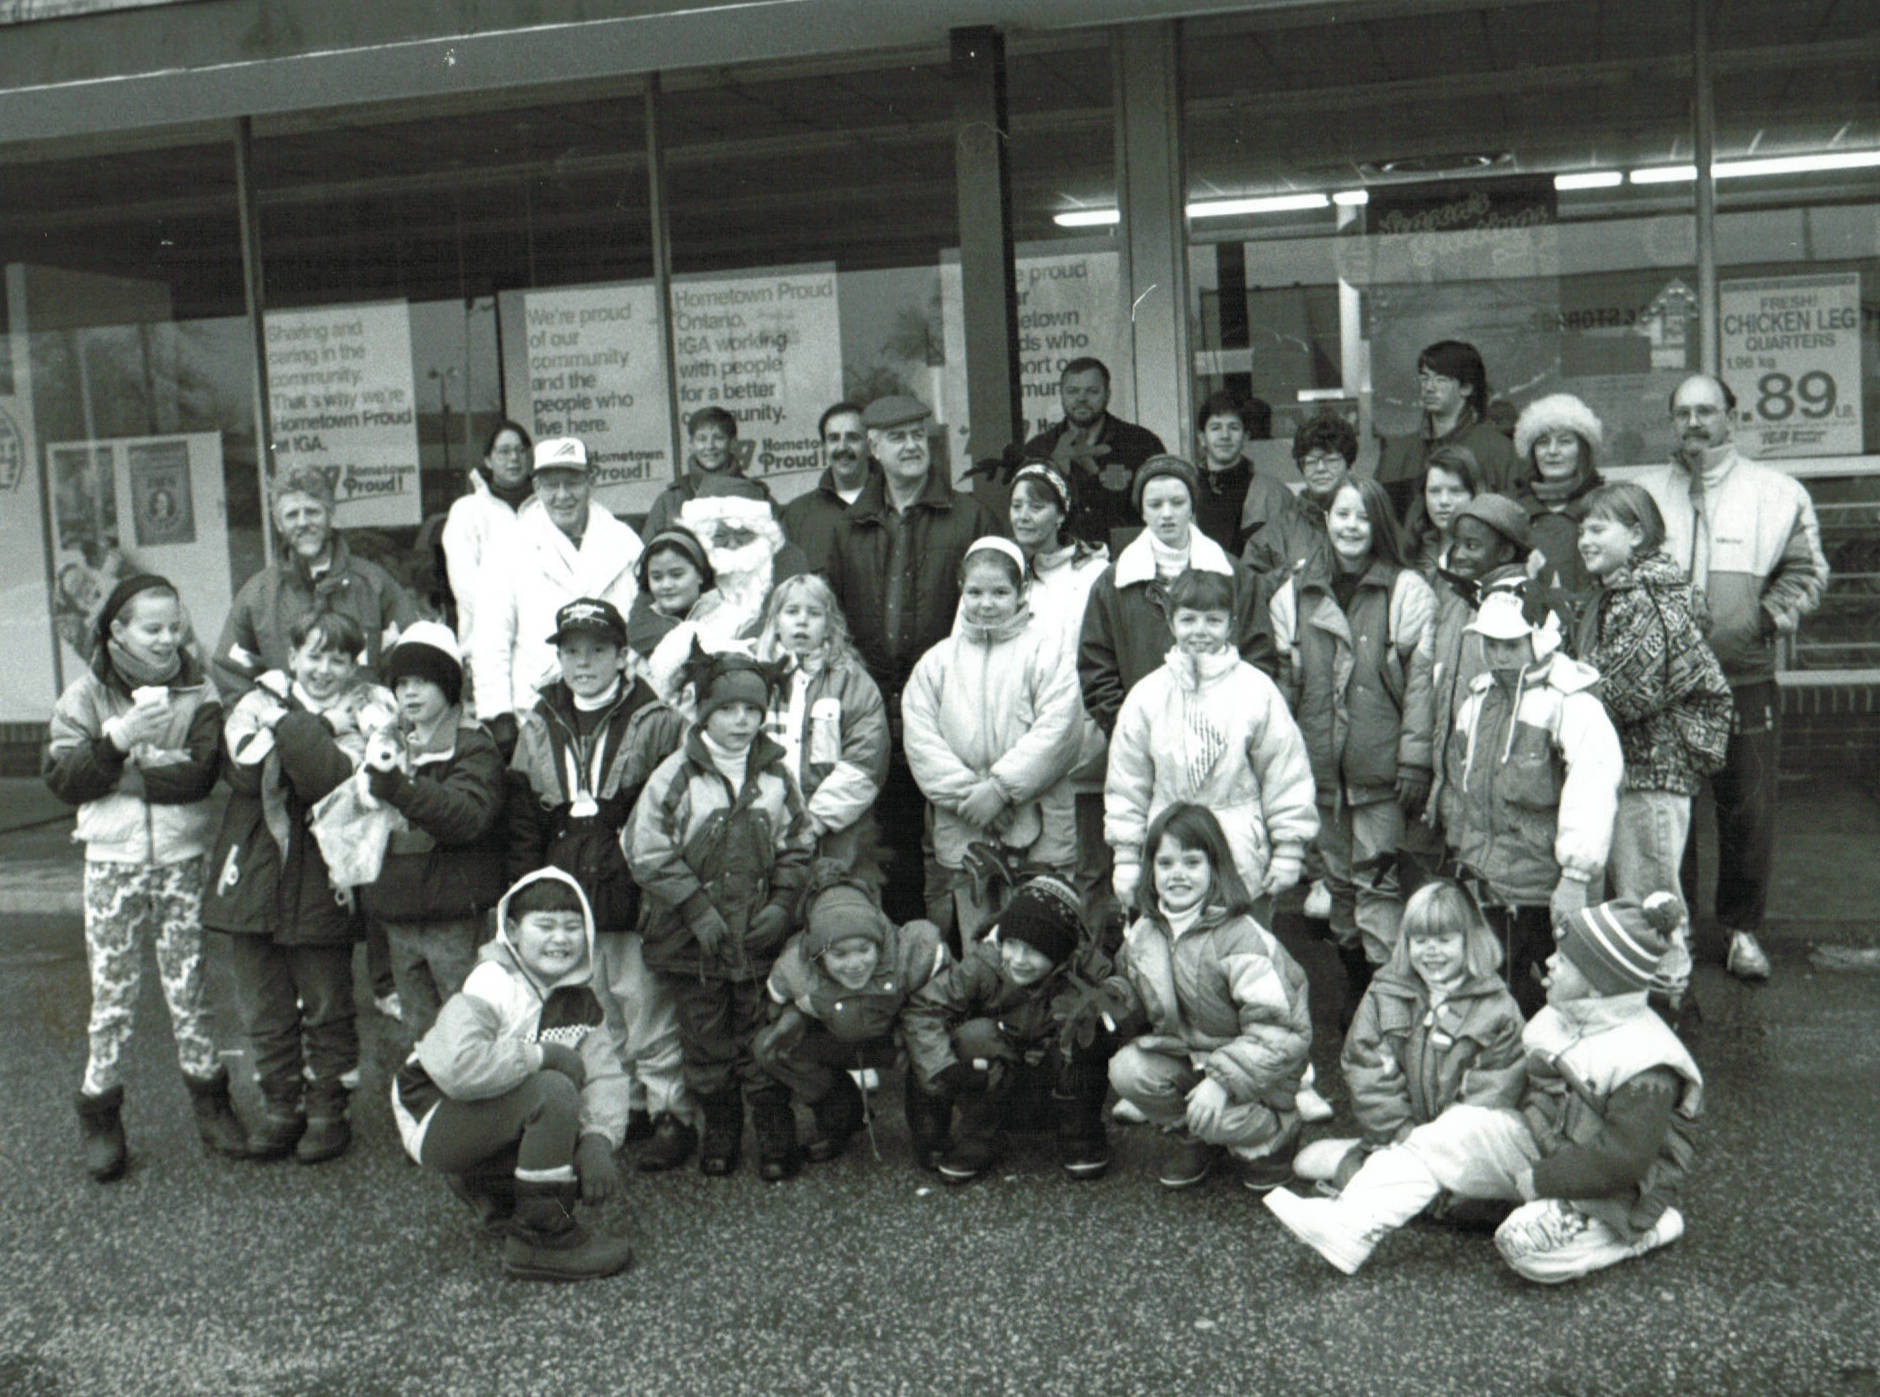 MWHA Christmas Caravan & Food Drive continued in the 1970's